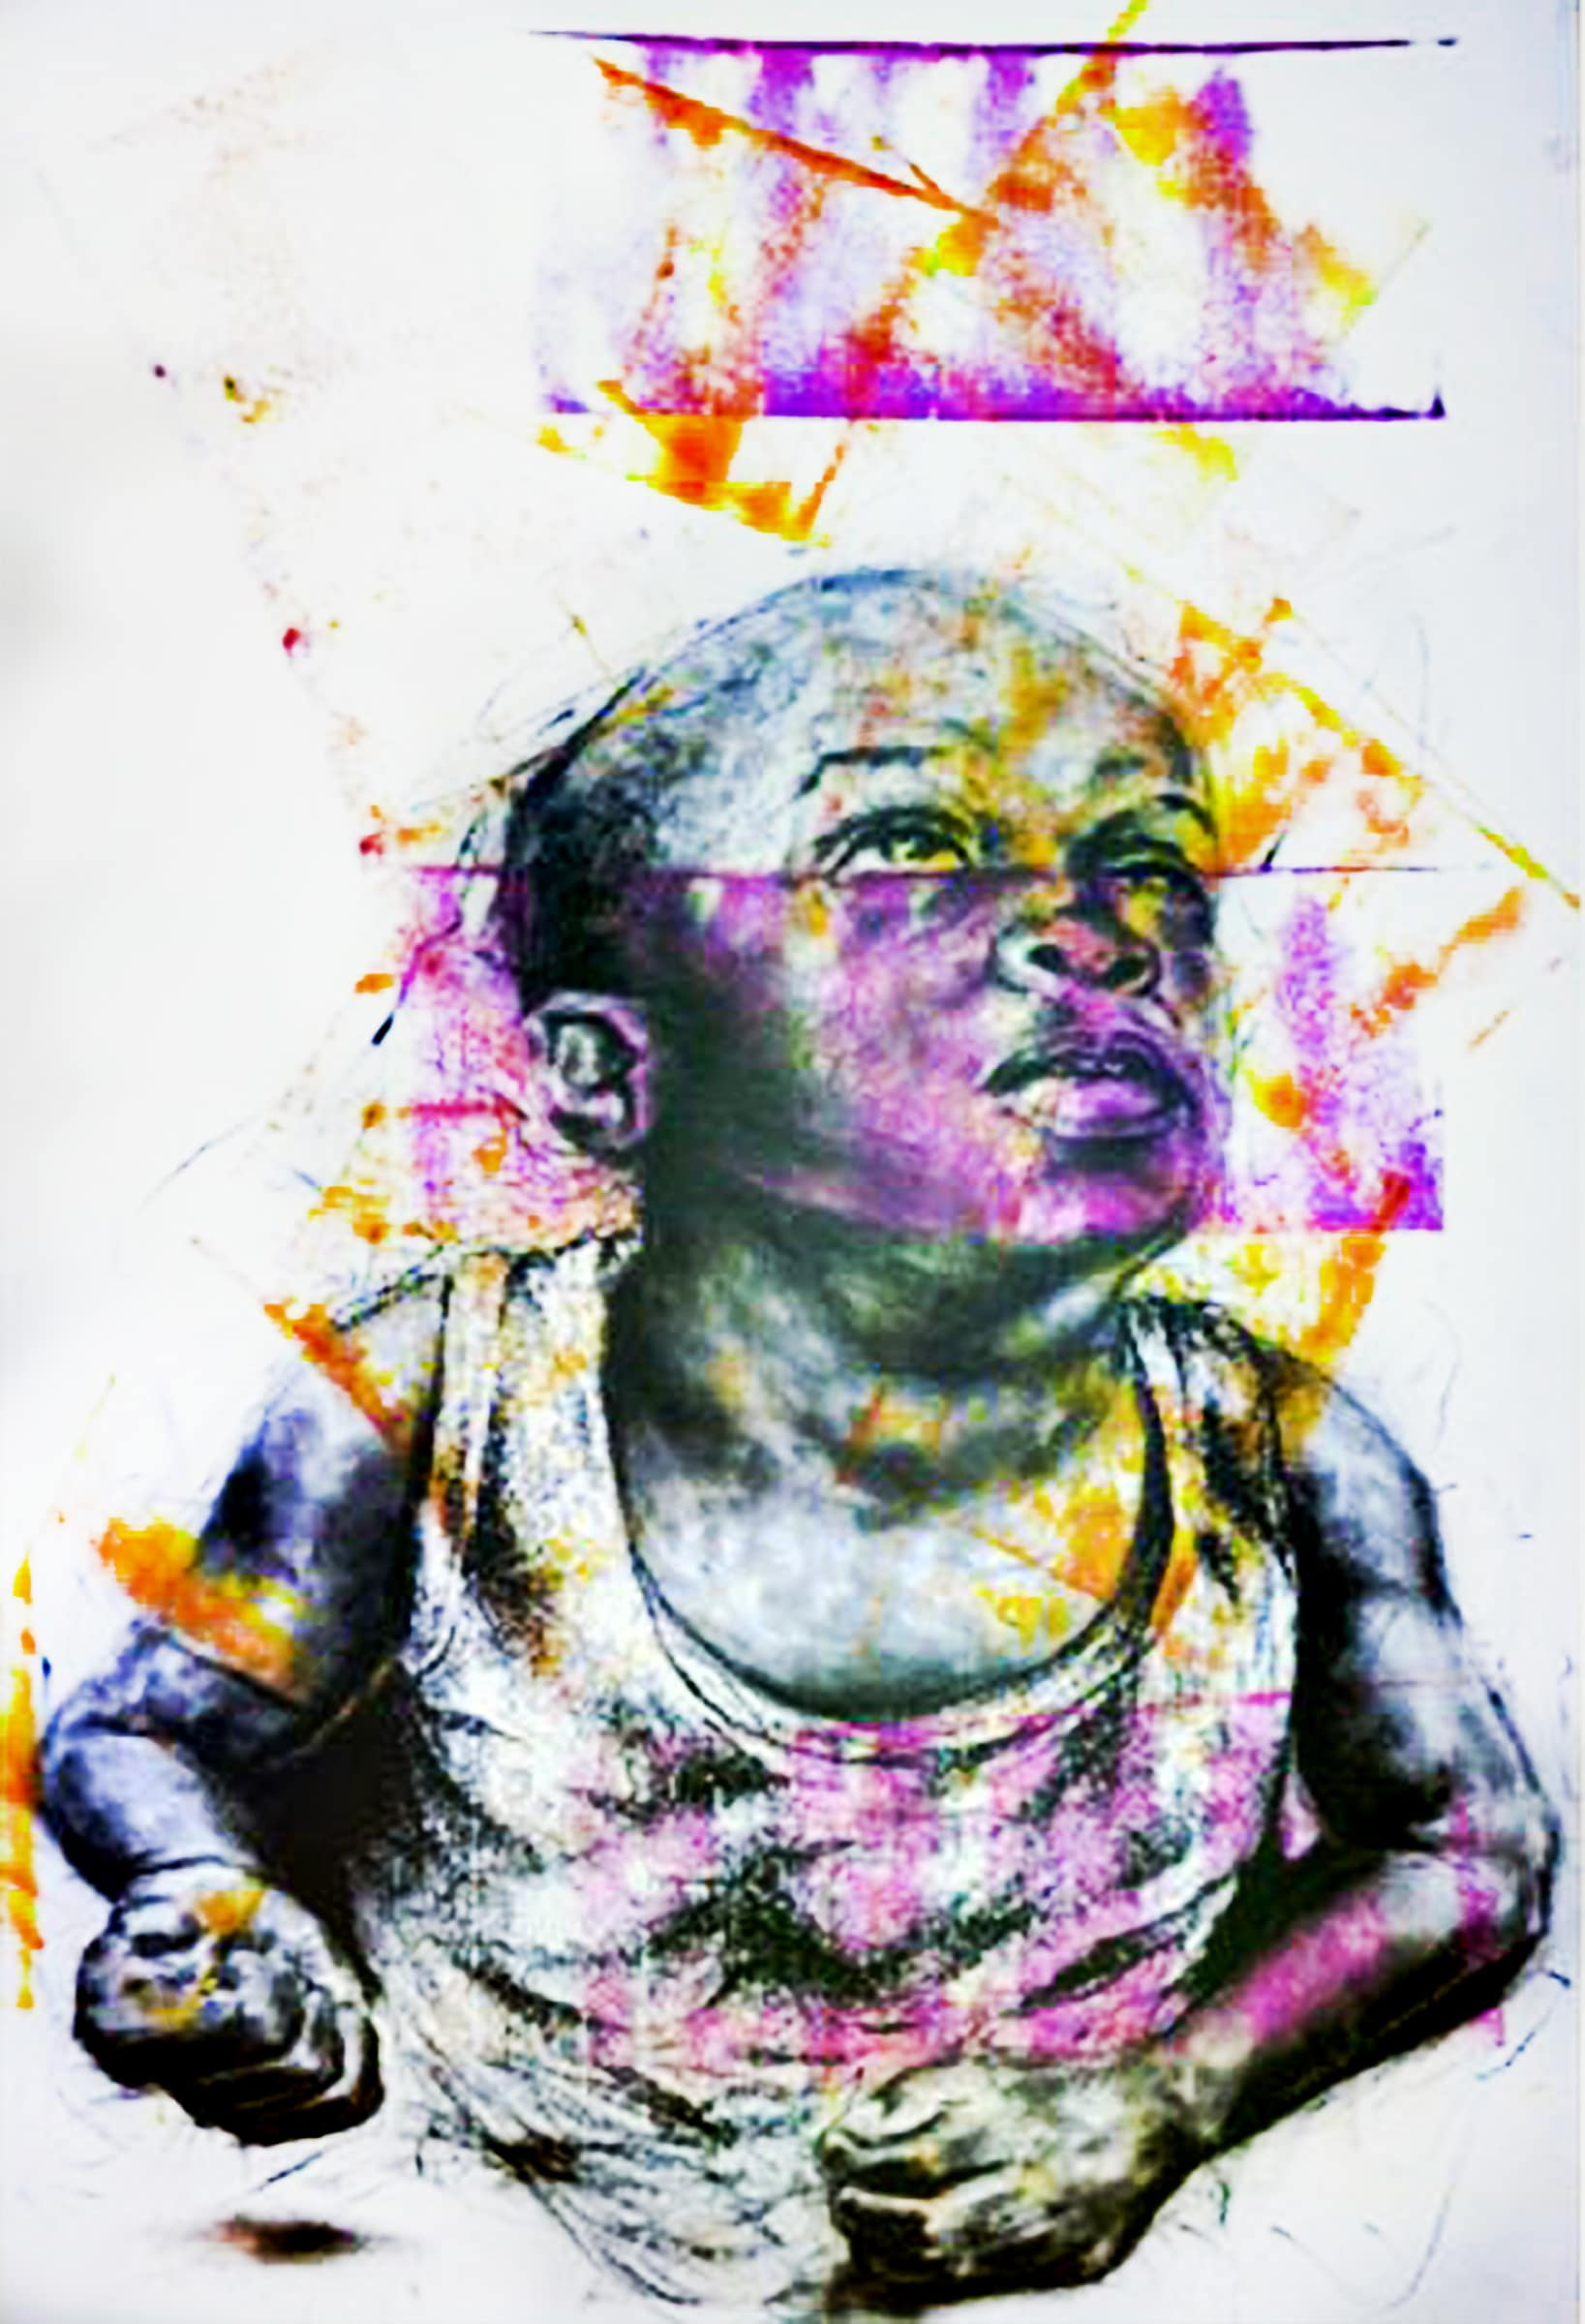 <span class=&#34;link fancybox-details-link&#34;><a href=&#34;/artists/89-mlamuli-mkhwanazi/works/3157-mlamuli-mkhwanazi-who-he-looks-up-to-child-2015/&#34;>View Detail Page</a></span><div class=&#34;artist&#34;><strong>Mlamuli Mkhwanazi</strong></div> <div class=&#34;title&#34;><em>Who He Looks Up To (Child)</em>, 2015</div> <div class=&#34;medium&#34;>Charcoal & Ink On Paper</div> <div class=&#34;dimensions&#34;>118cm x 80cm</div><div class=&#34;price&#34;>R22,000.00</div>